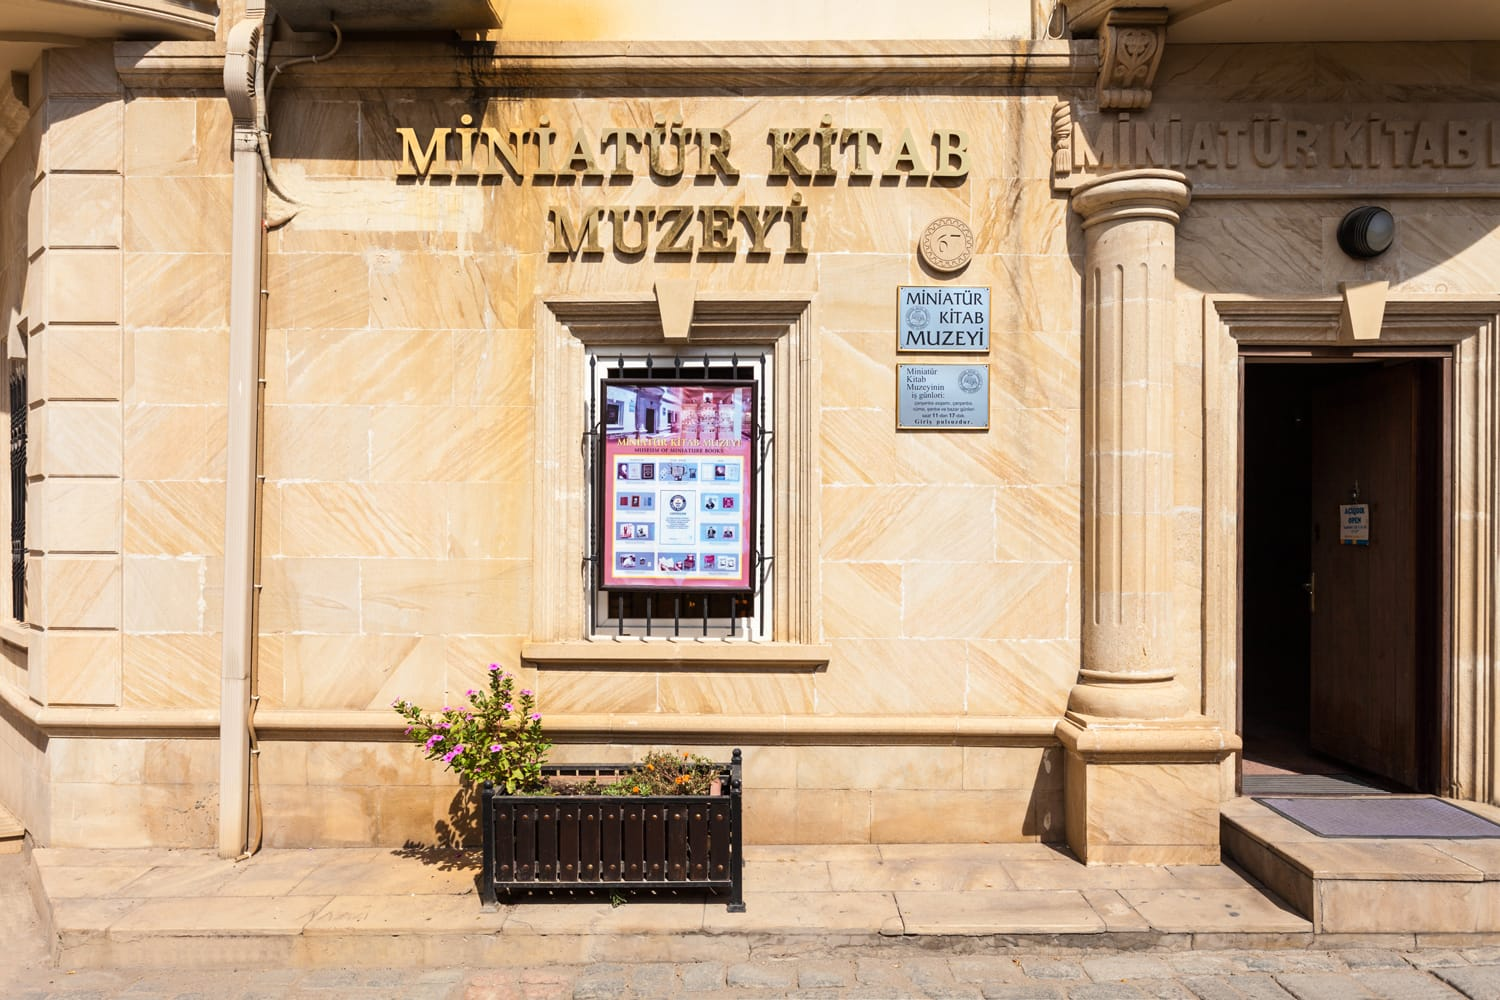 Museum of Miniature Books is the only museum of miniature books in the world, settled in old part of Baku, called Inner or Old City Icheri Sheher, Azerbaijan.